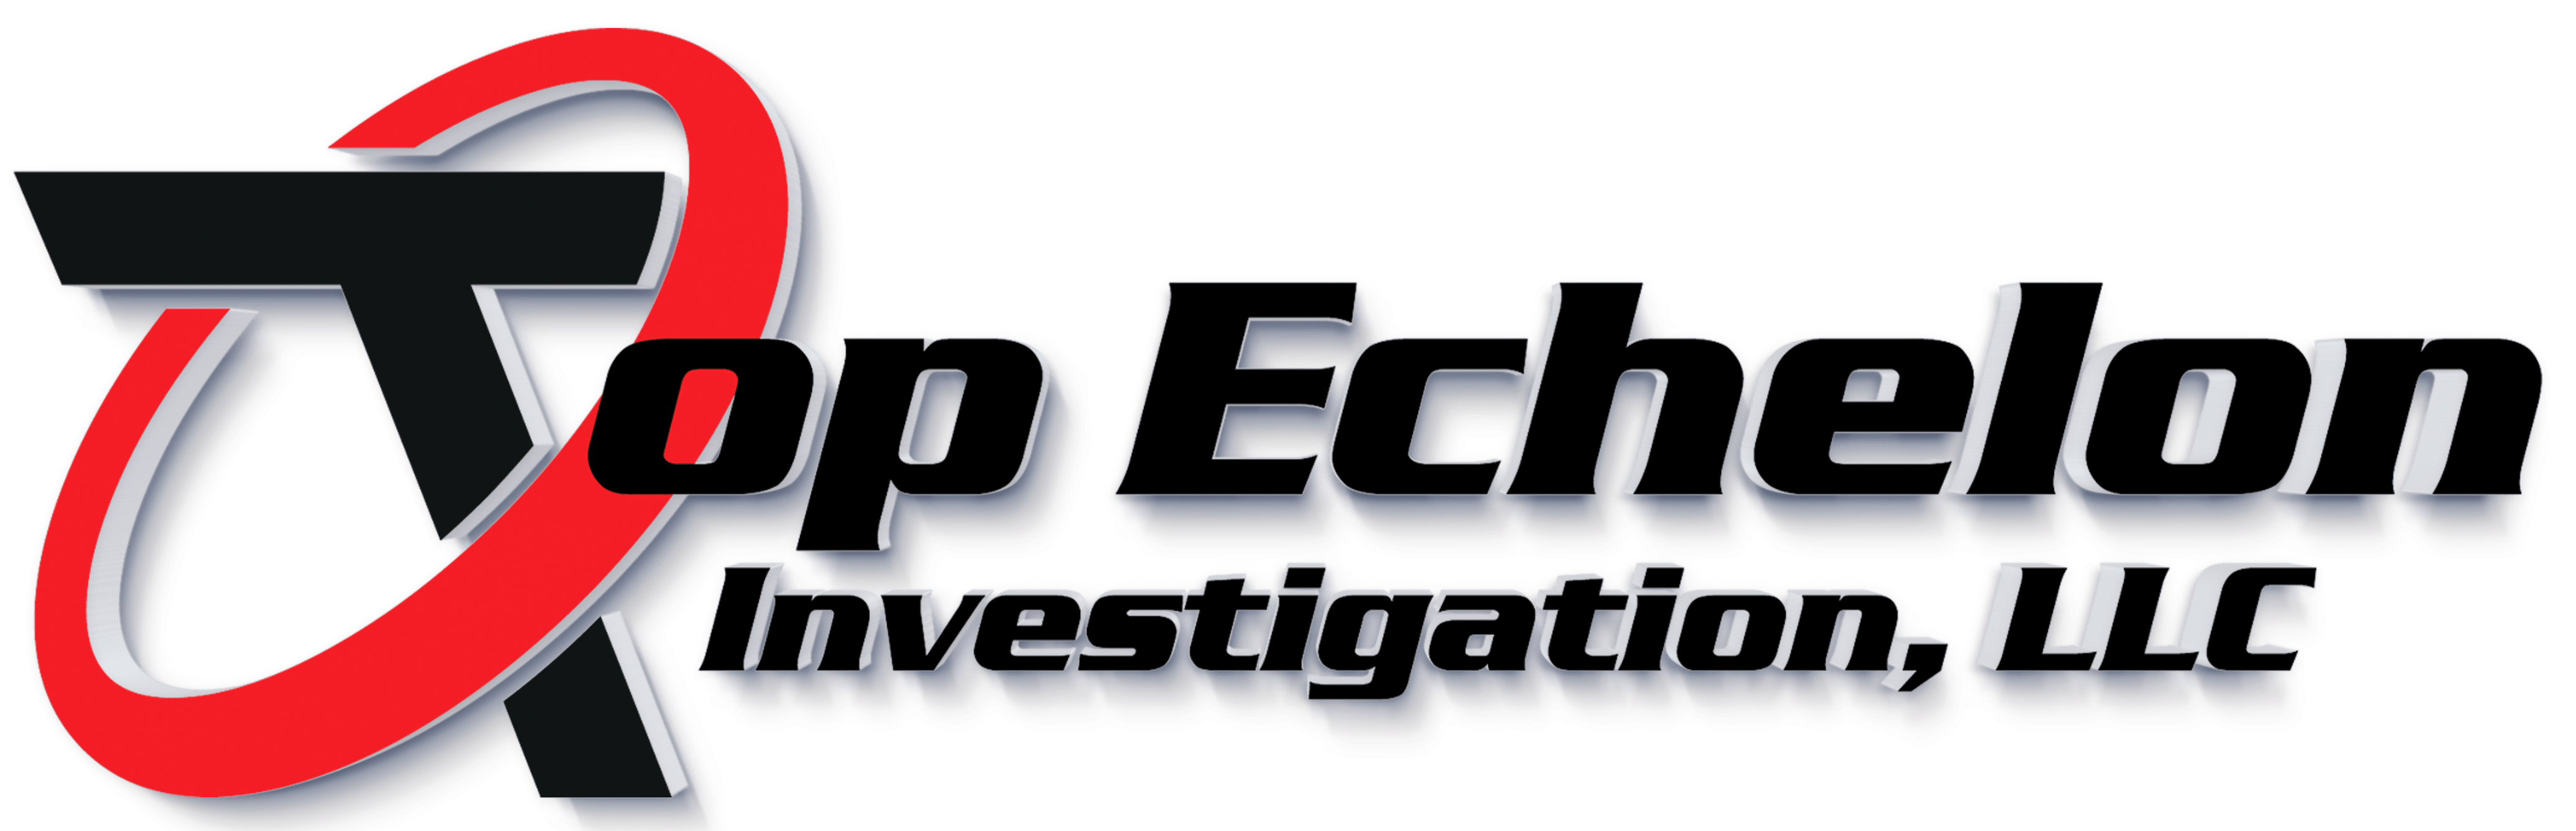 Top Echelon's Process Severs in Lake Charles, LA Get Results